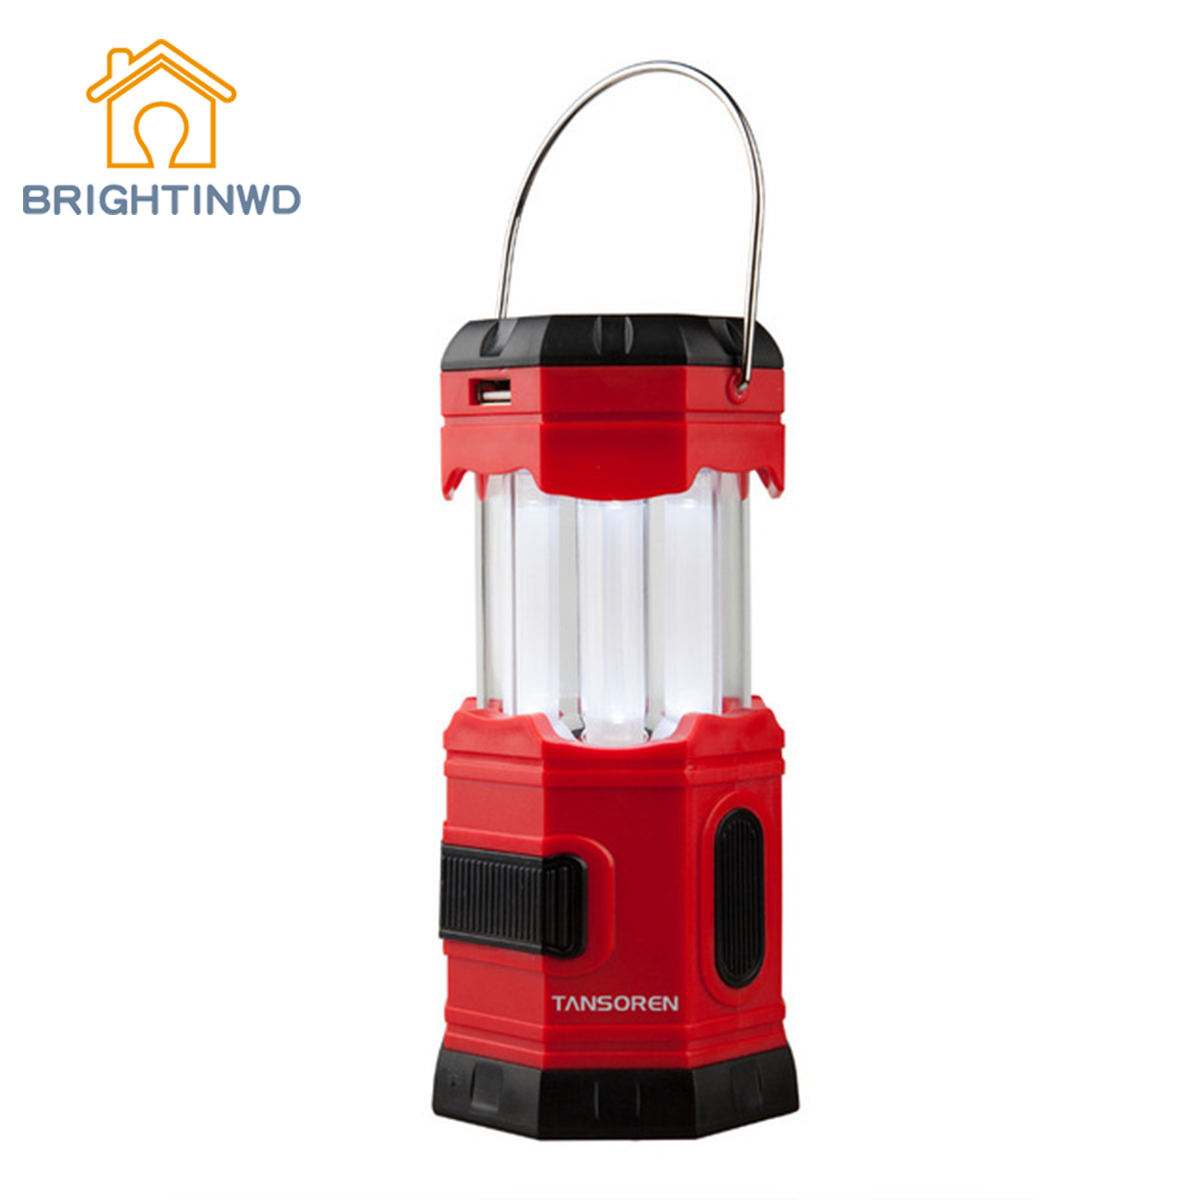 BRIGHTINWD LED Solar USB Rechargeable 180 Lumens Waterproof Camping Lantern Portable Emergency Camping Lamp Tent Lanterns